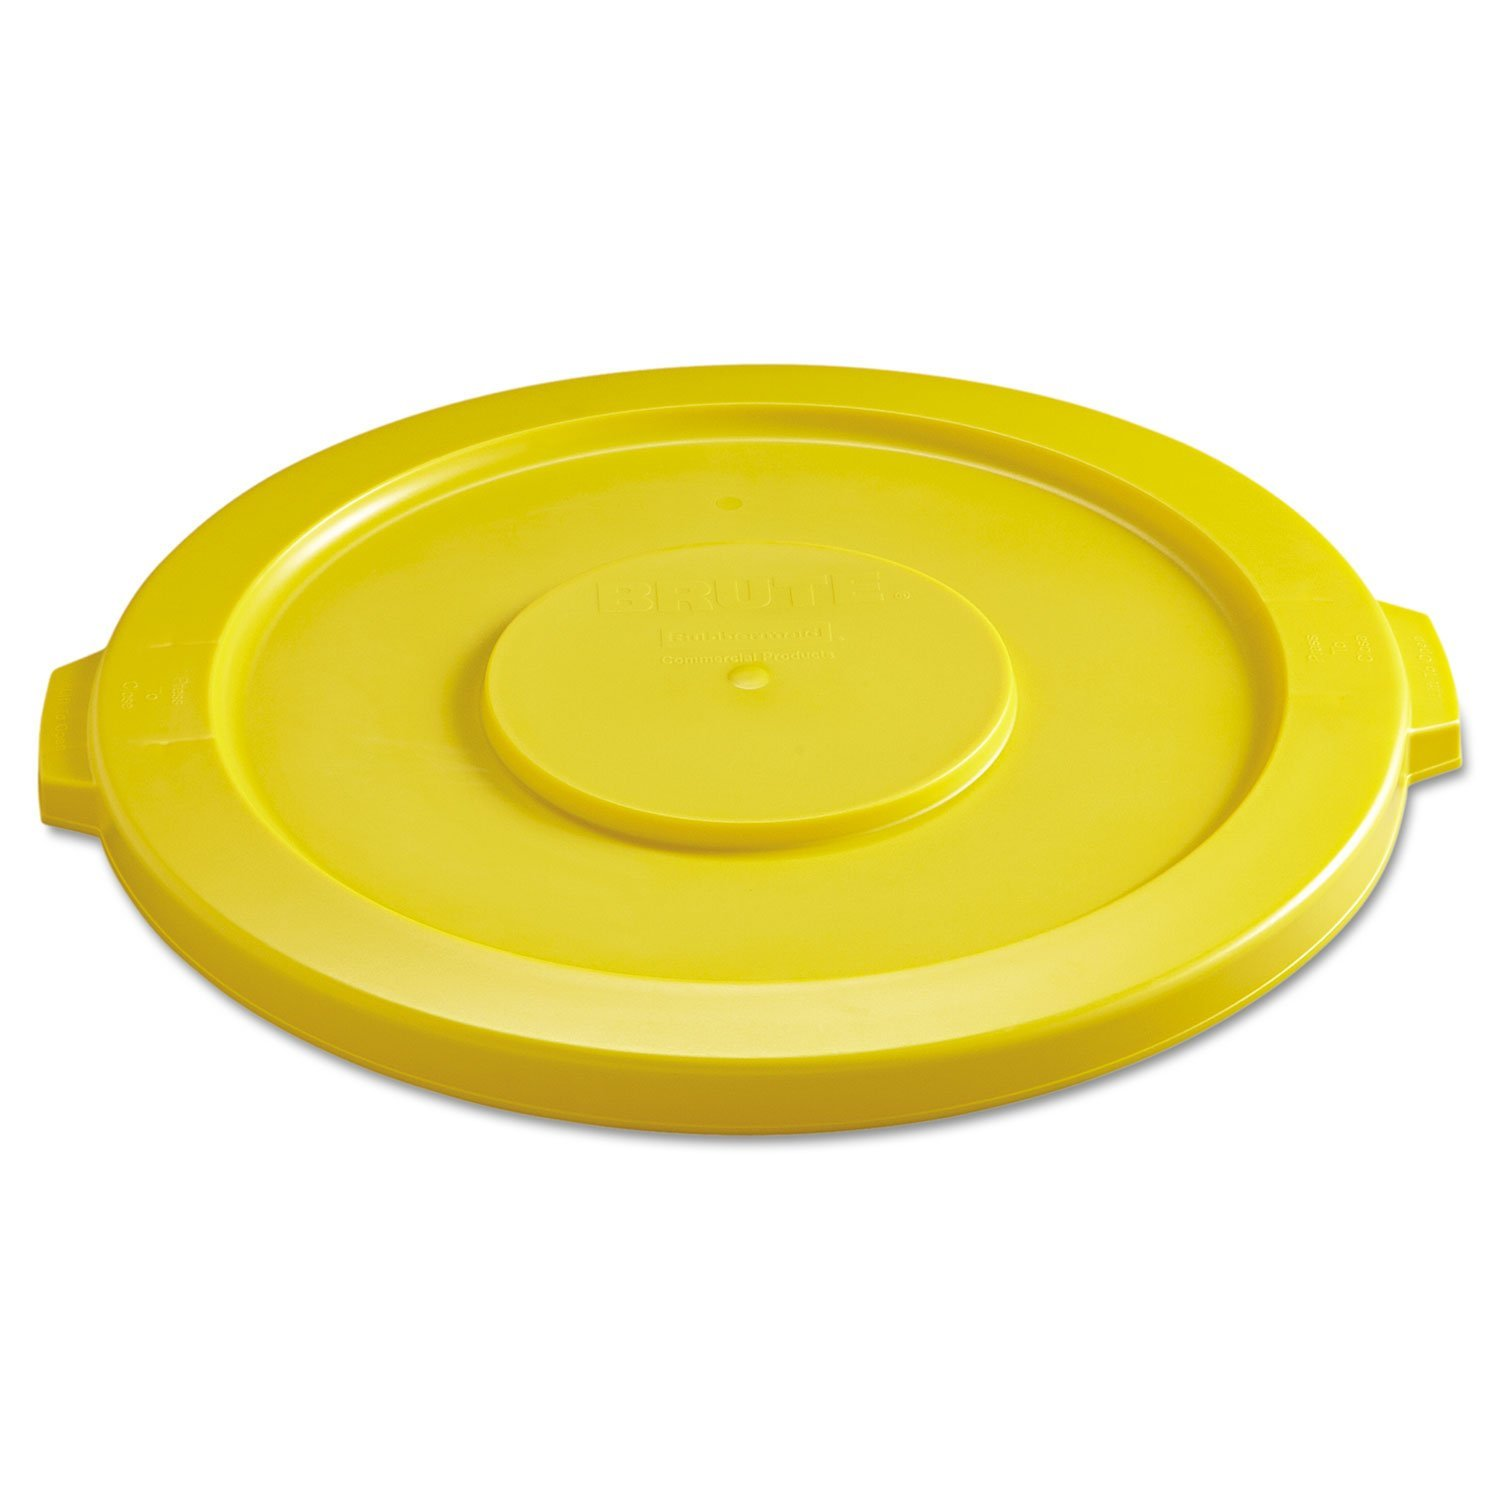 Rubbermaid Commercial Round Flat Top Lid, for 32-Gallon Round Brute Containers, 22 1/4 inch, dia., Yellow